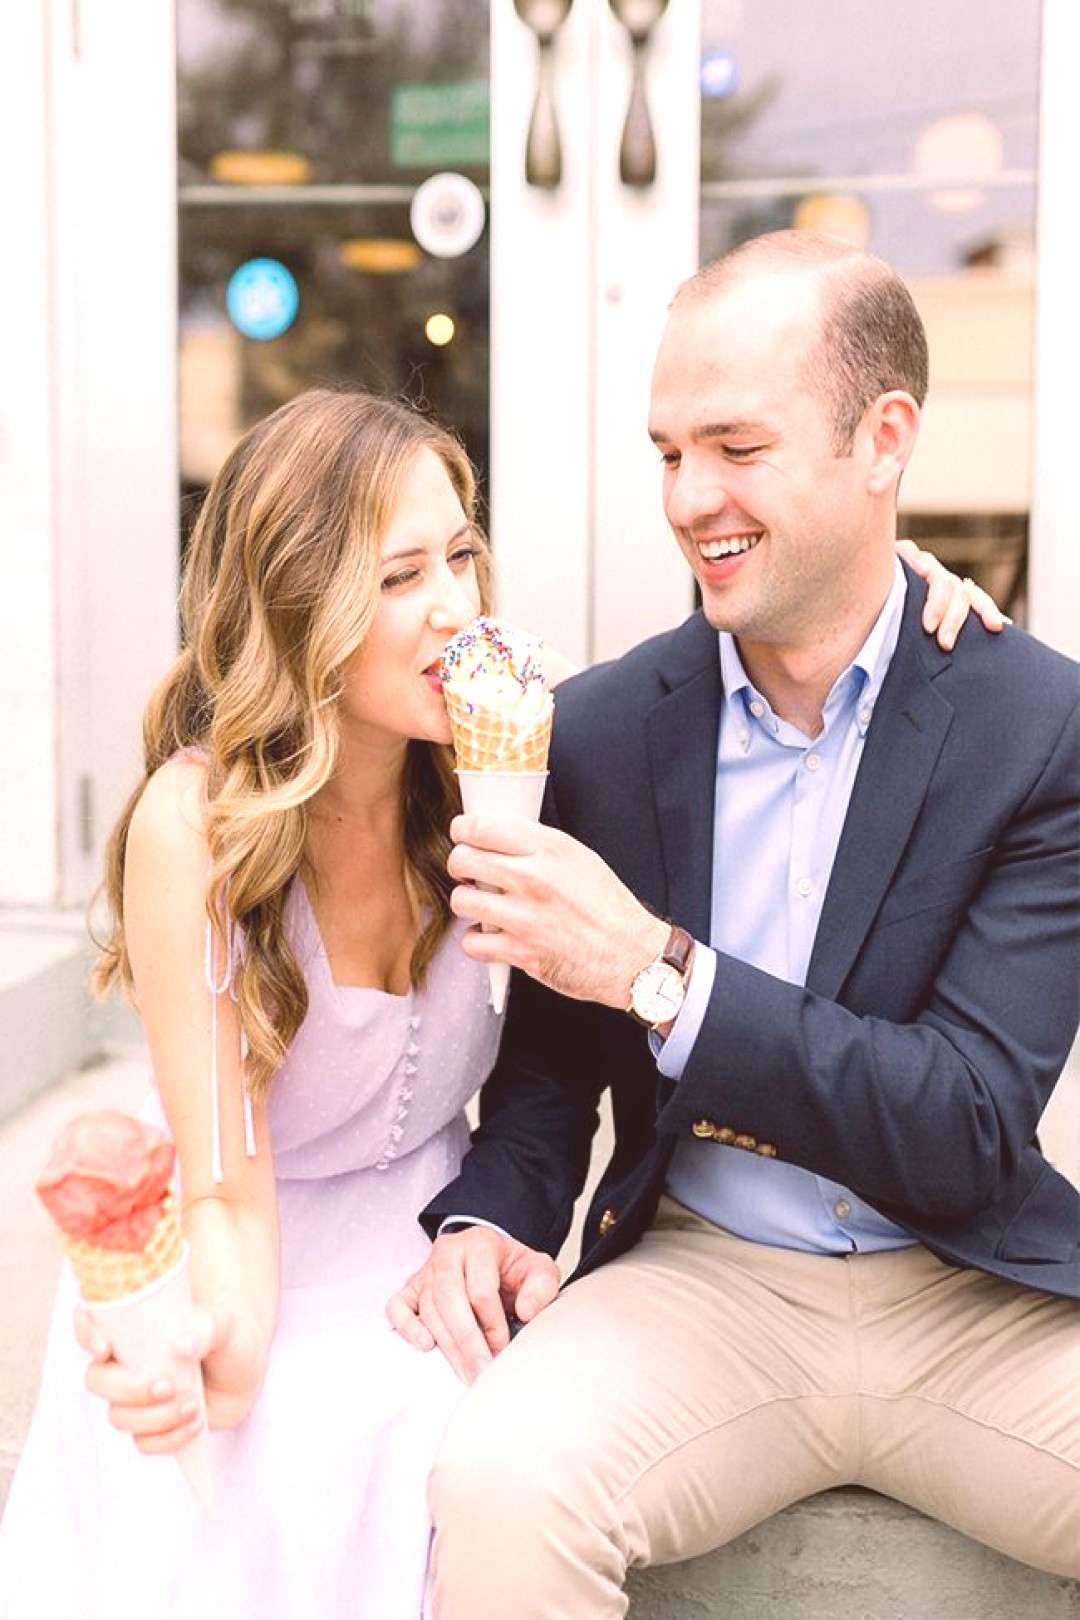 Playful Engagement Photos in Pittsburgh - Inspired By This - Playful Engagement Photos in Pittsbur